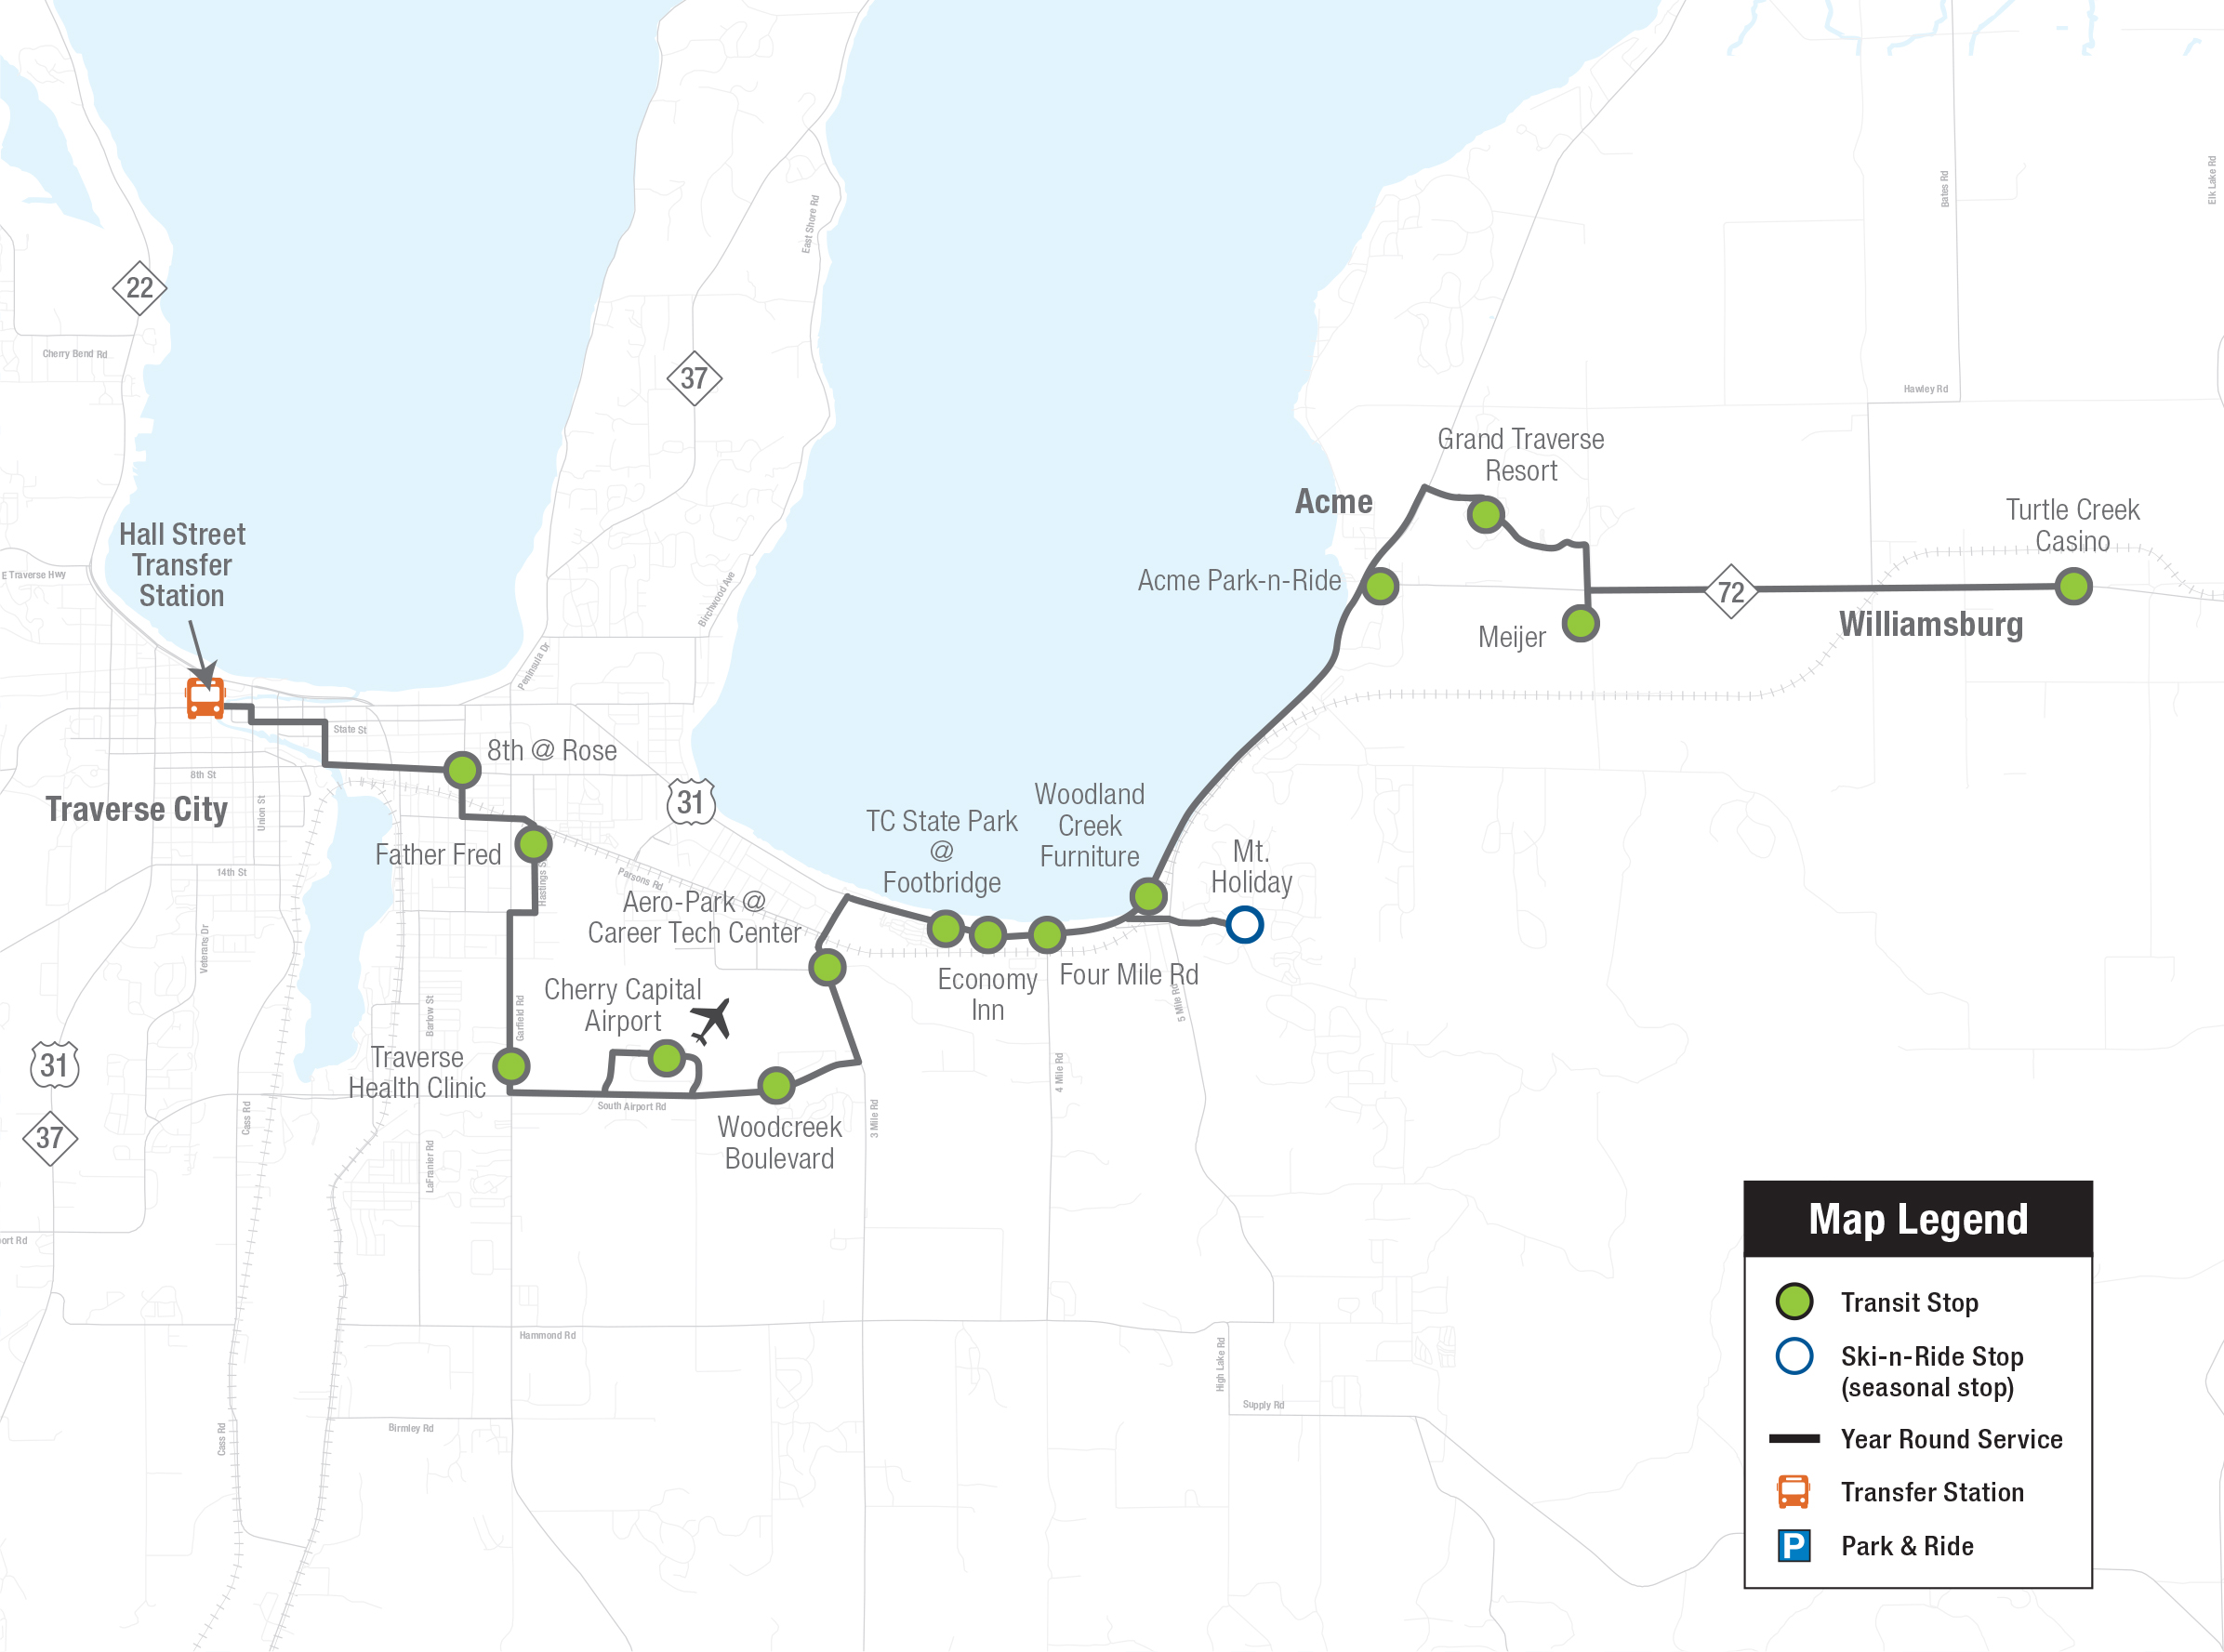 Route 14 Bus Map to Williamsburg for Northern Michigan Bay Area Transportation Authority